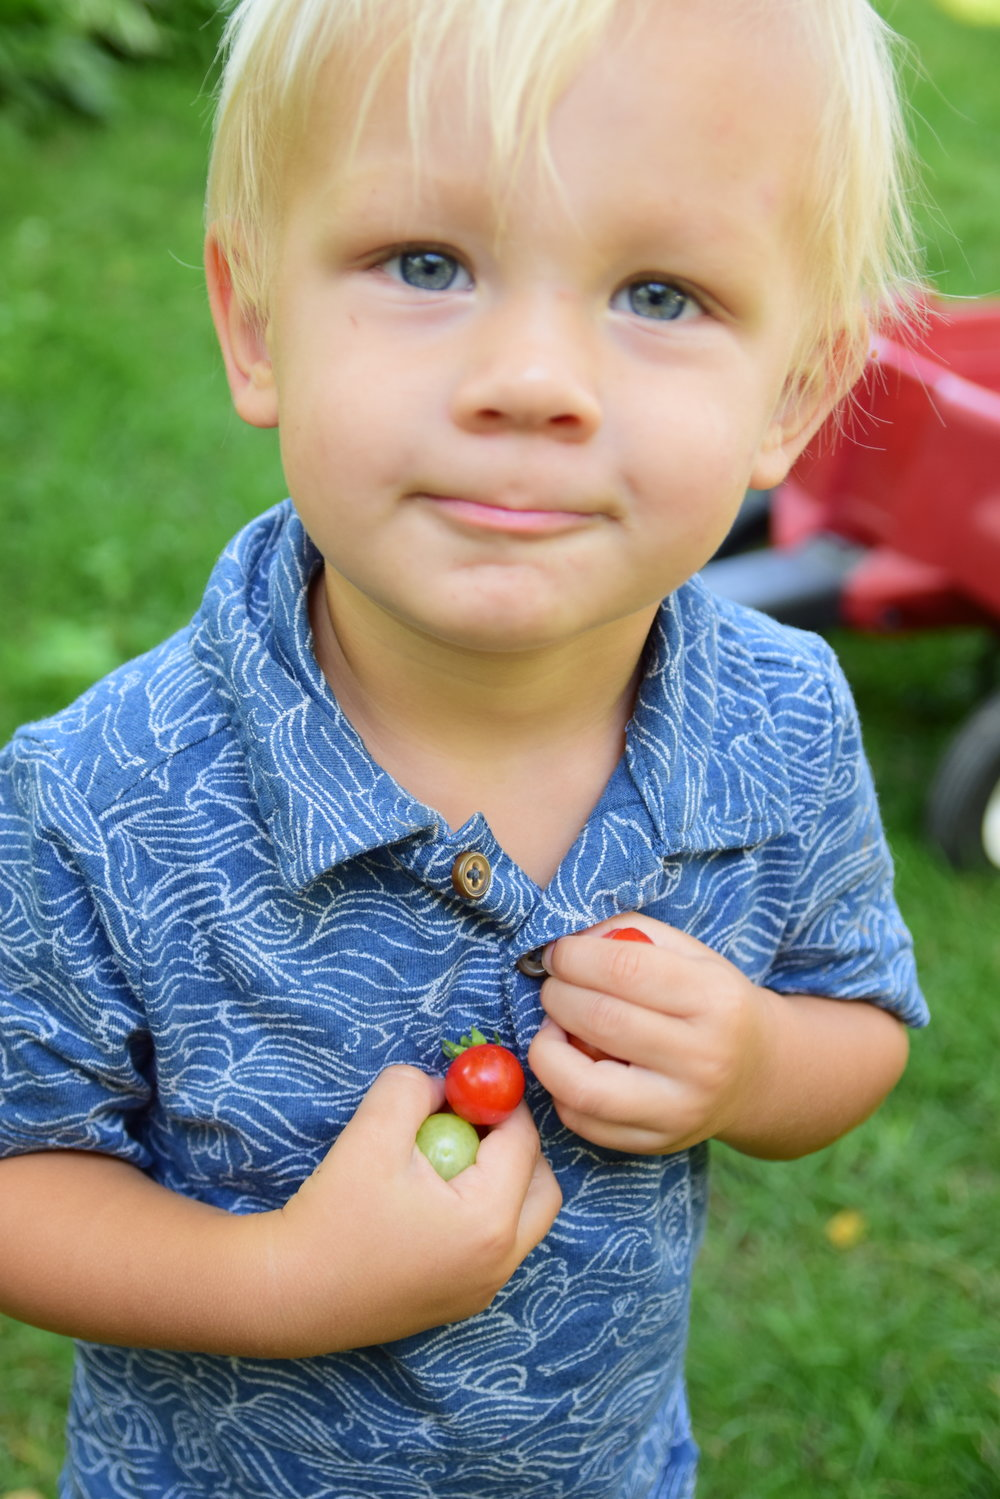 Garden Soap - We made Garden Soap with my little garden helper, Felix. (He was just a tomato picker, not involved with the actual soap making!)